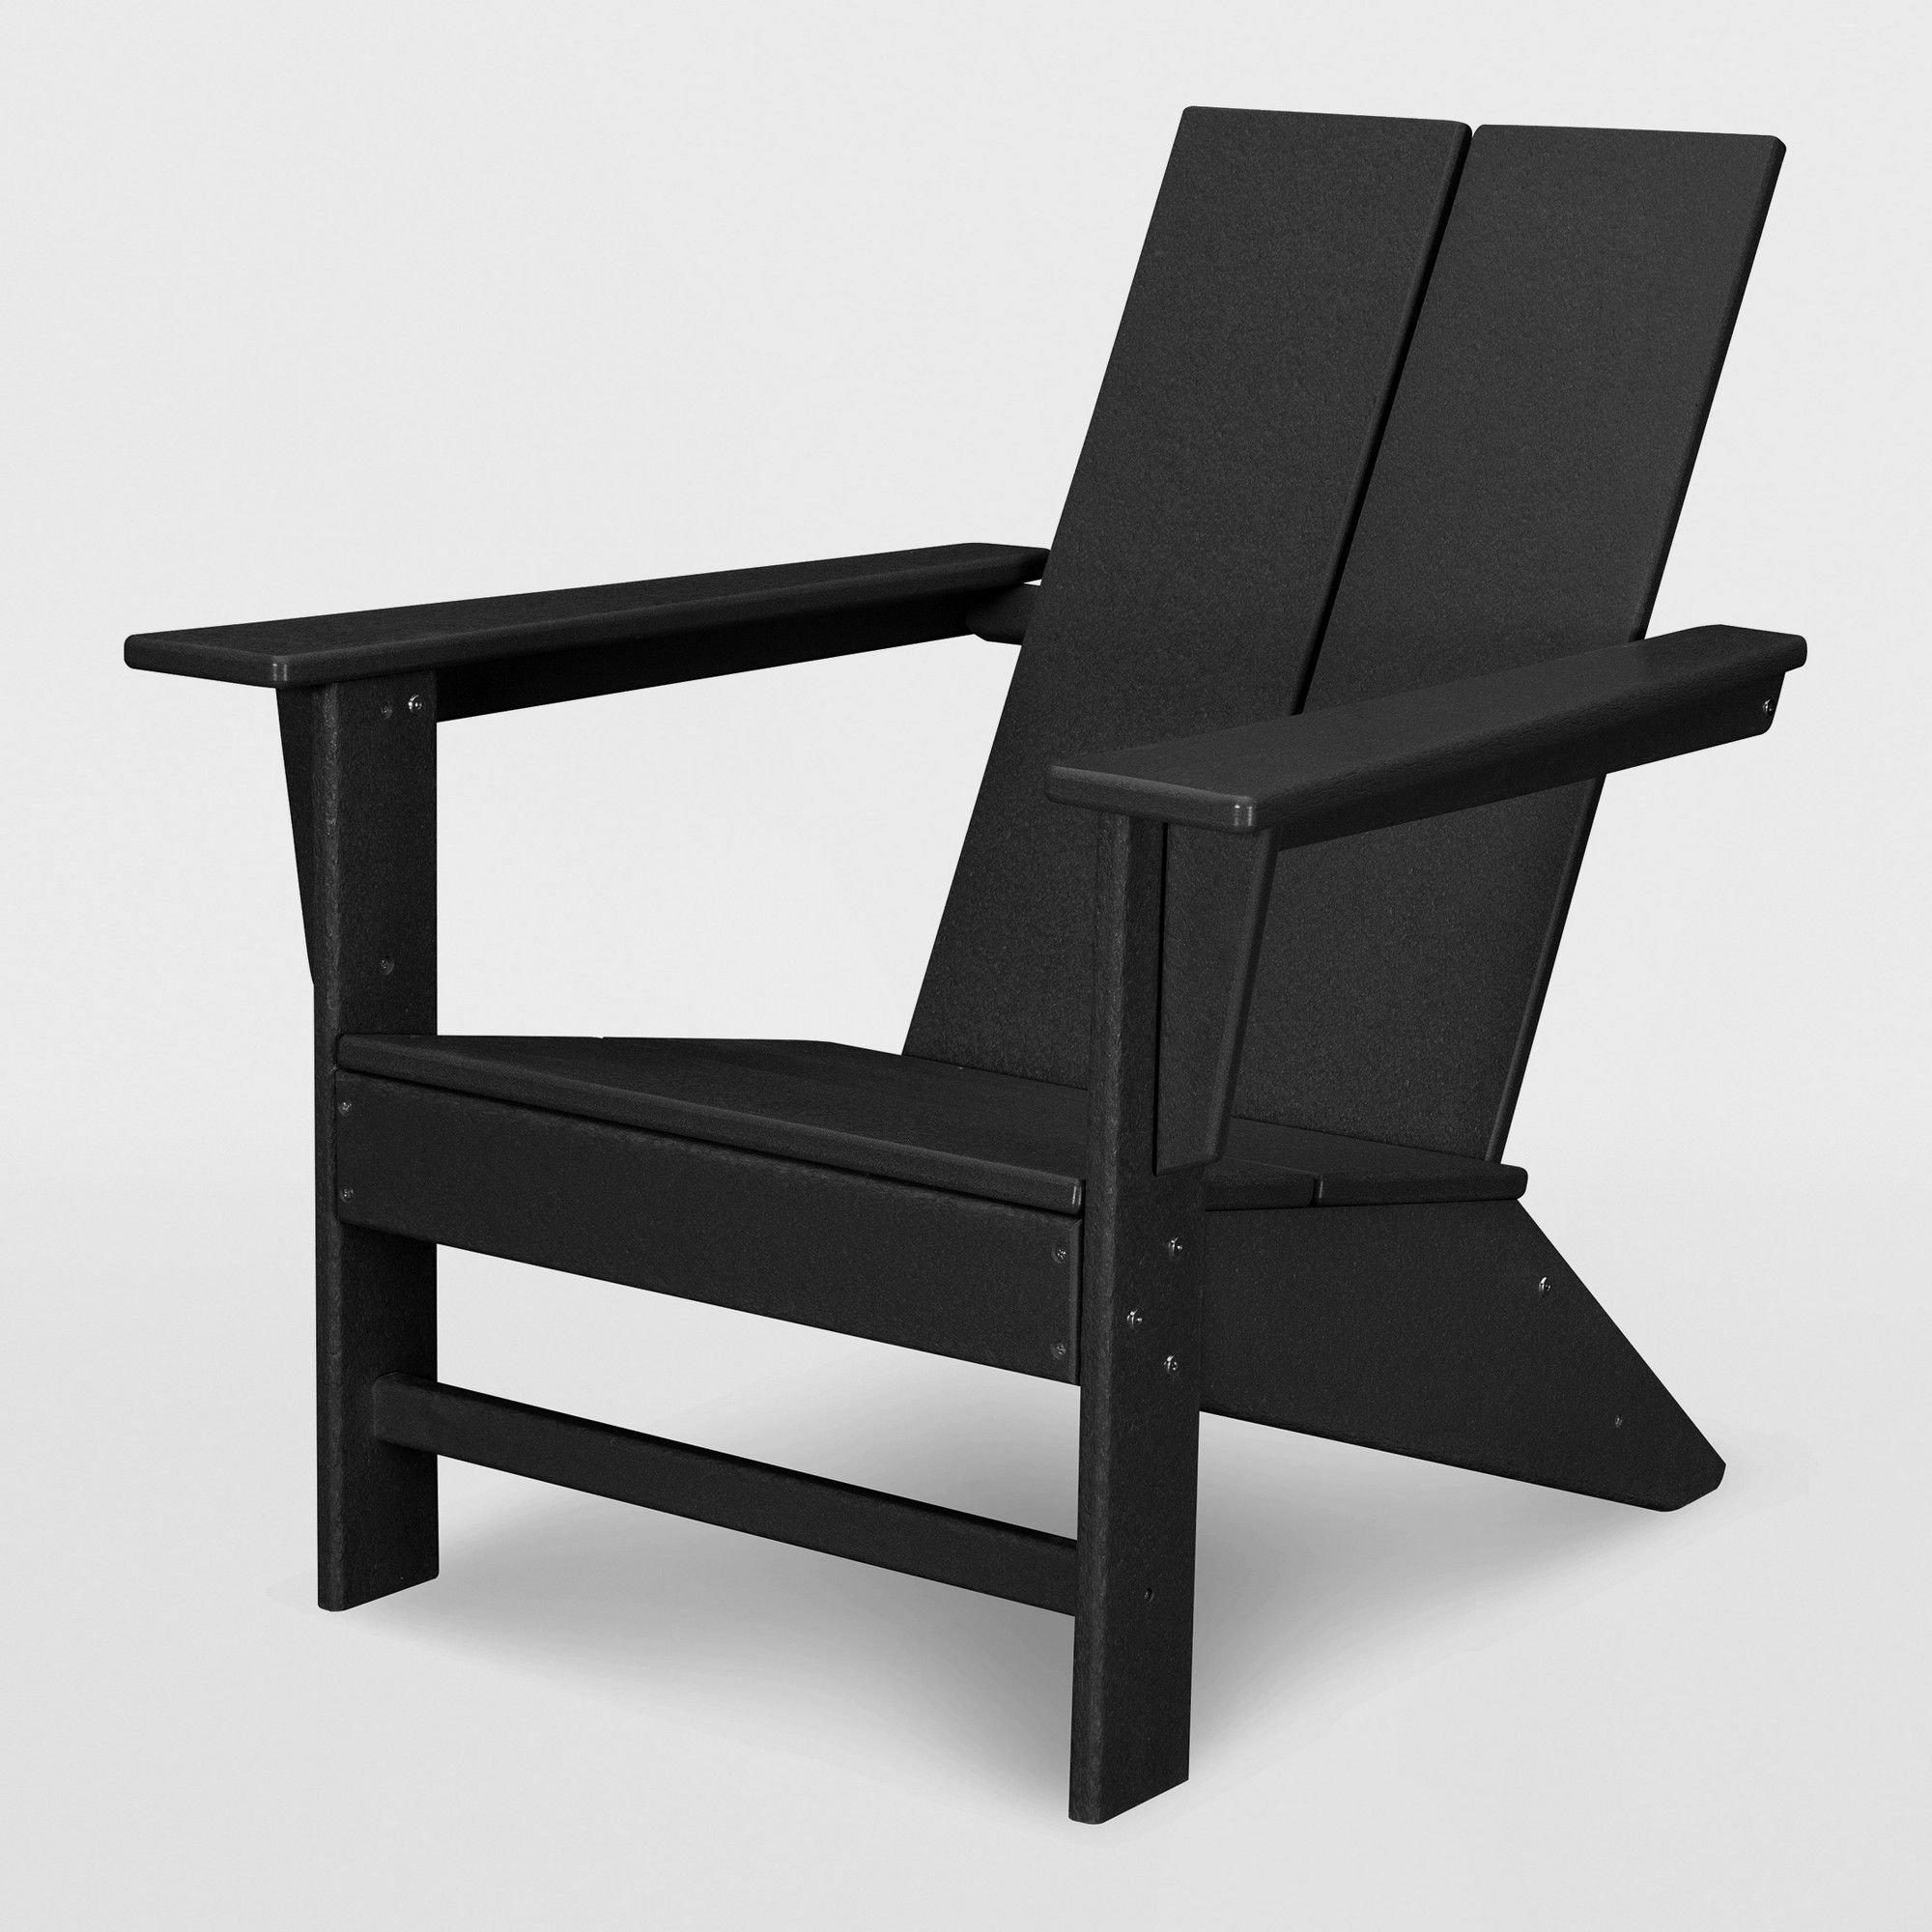 Moore Polywood Adirondack Chair Black Project 62 Contemporary Adirondack Chairs Polywood Adirondack Chairs Patio Dining Chairs